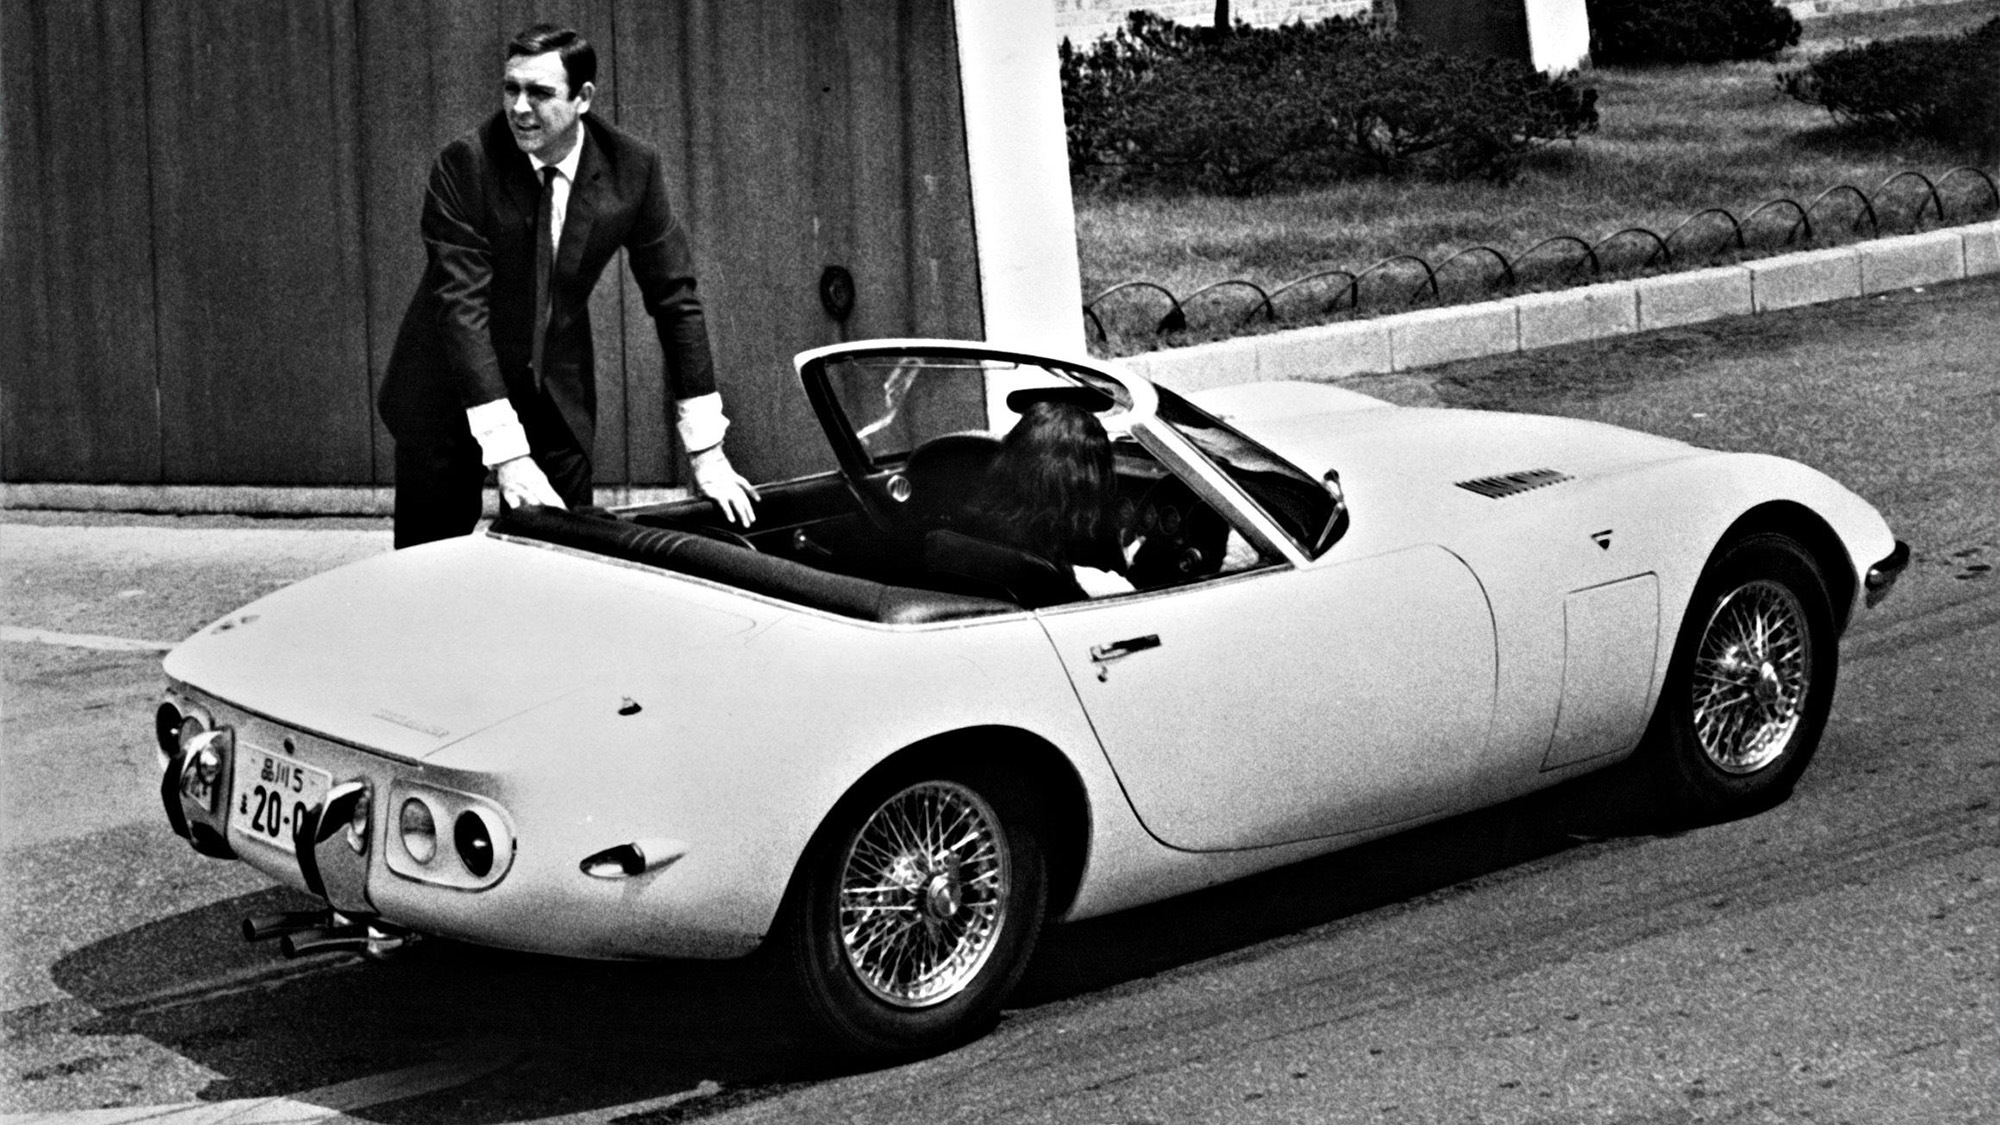 How James Bond turned to Austin-Healey when Toyota sports car was too weedy